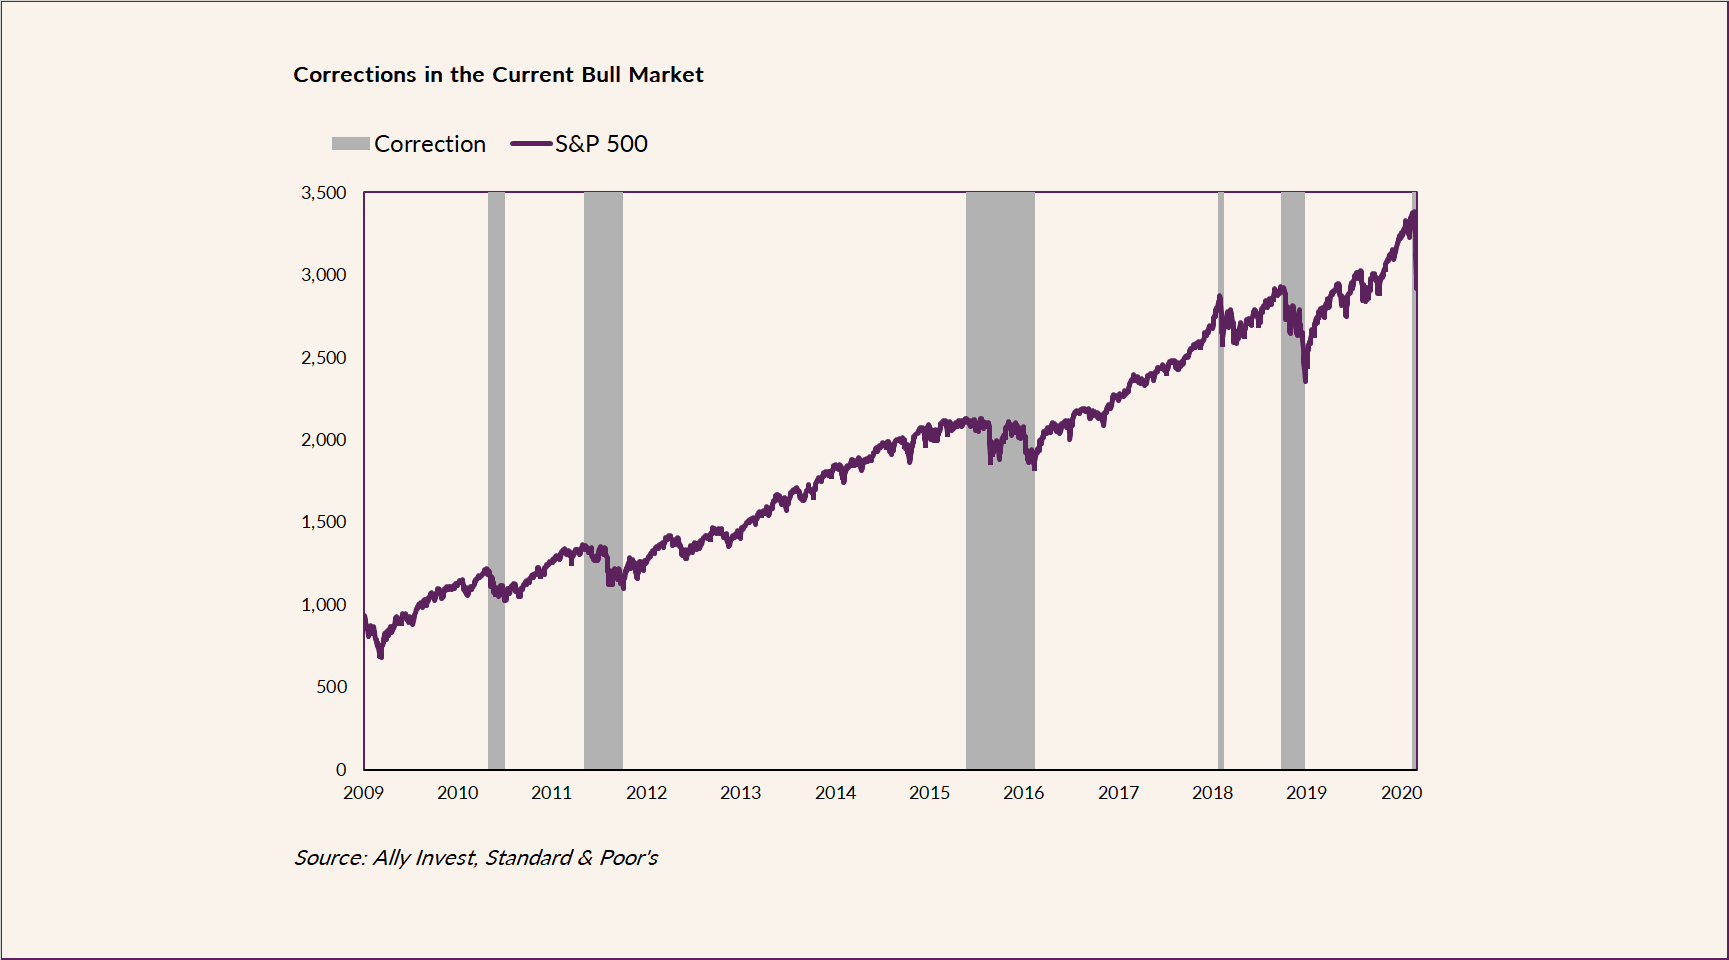 A look at the steady rise in the S&P 500 Indez from 2009 to 2020, despite several market corrections.